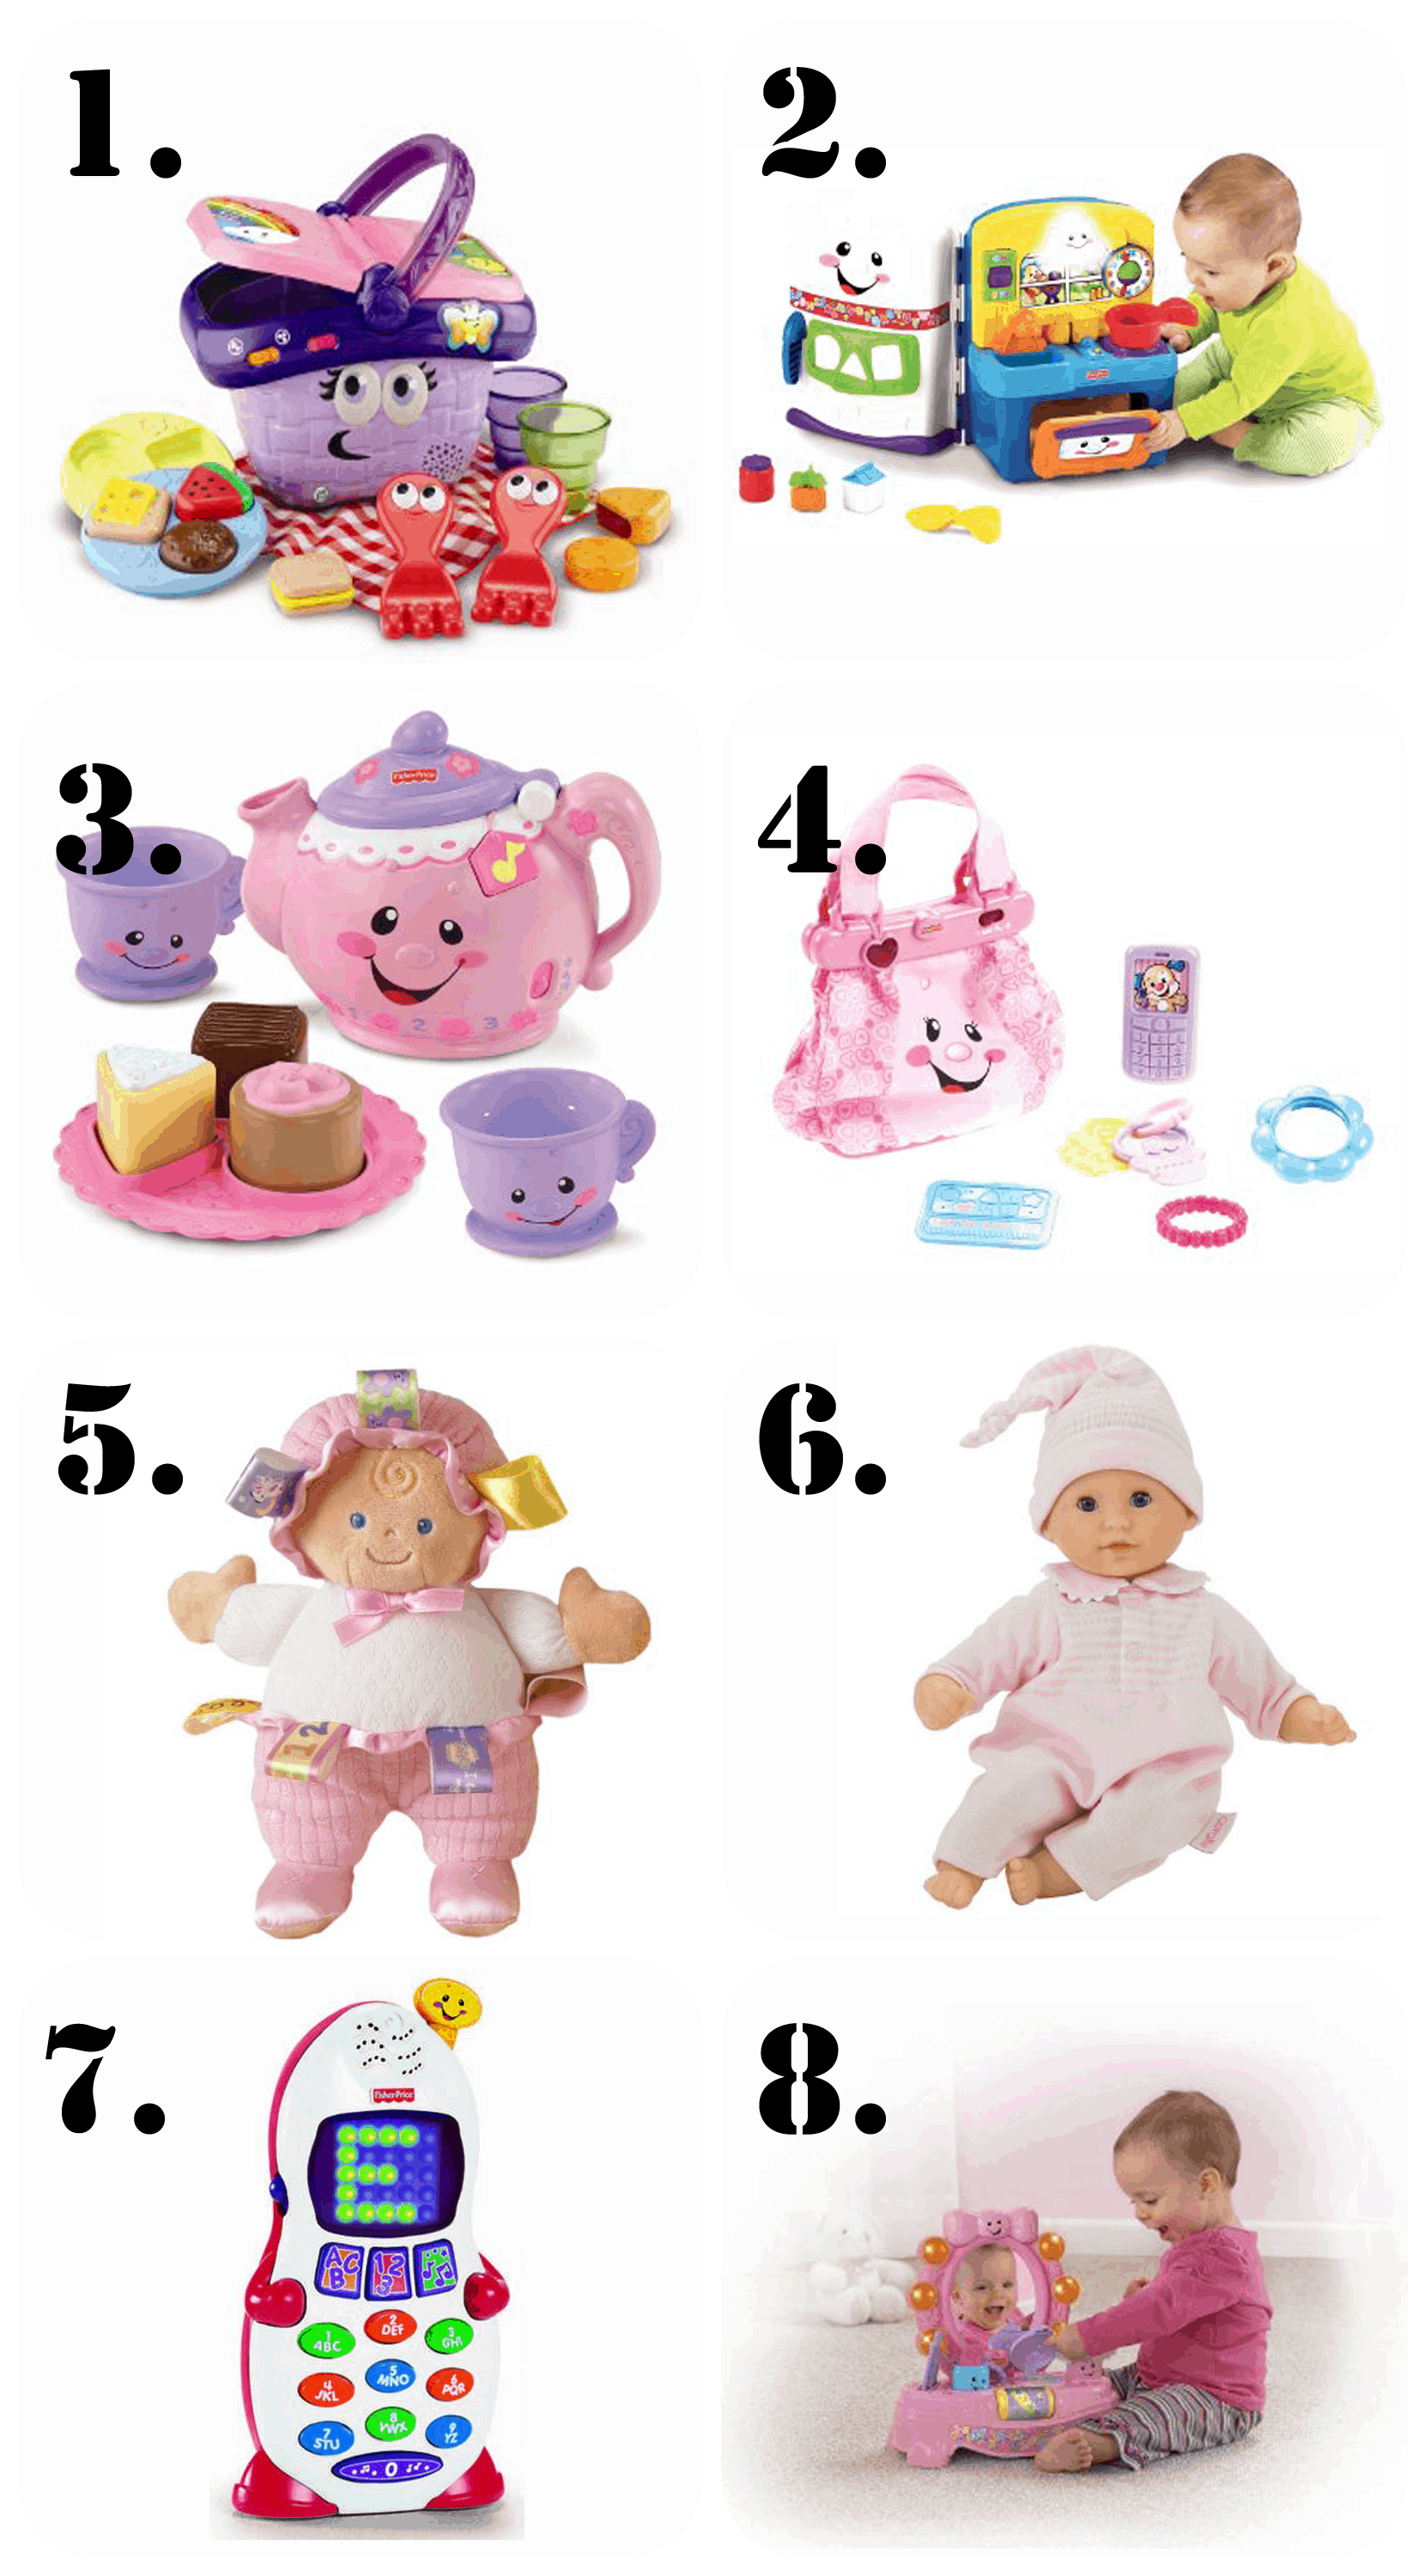 Dolls Tea Sets And Other Toys Make The Best Gifts For 1 Year Old